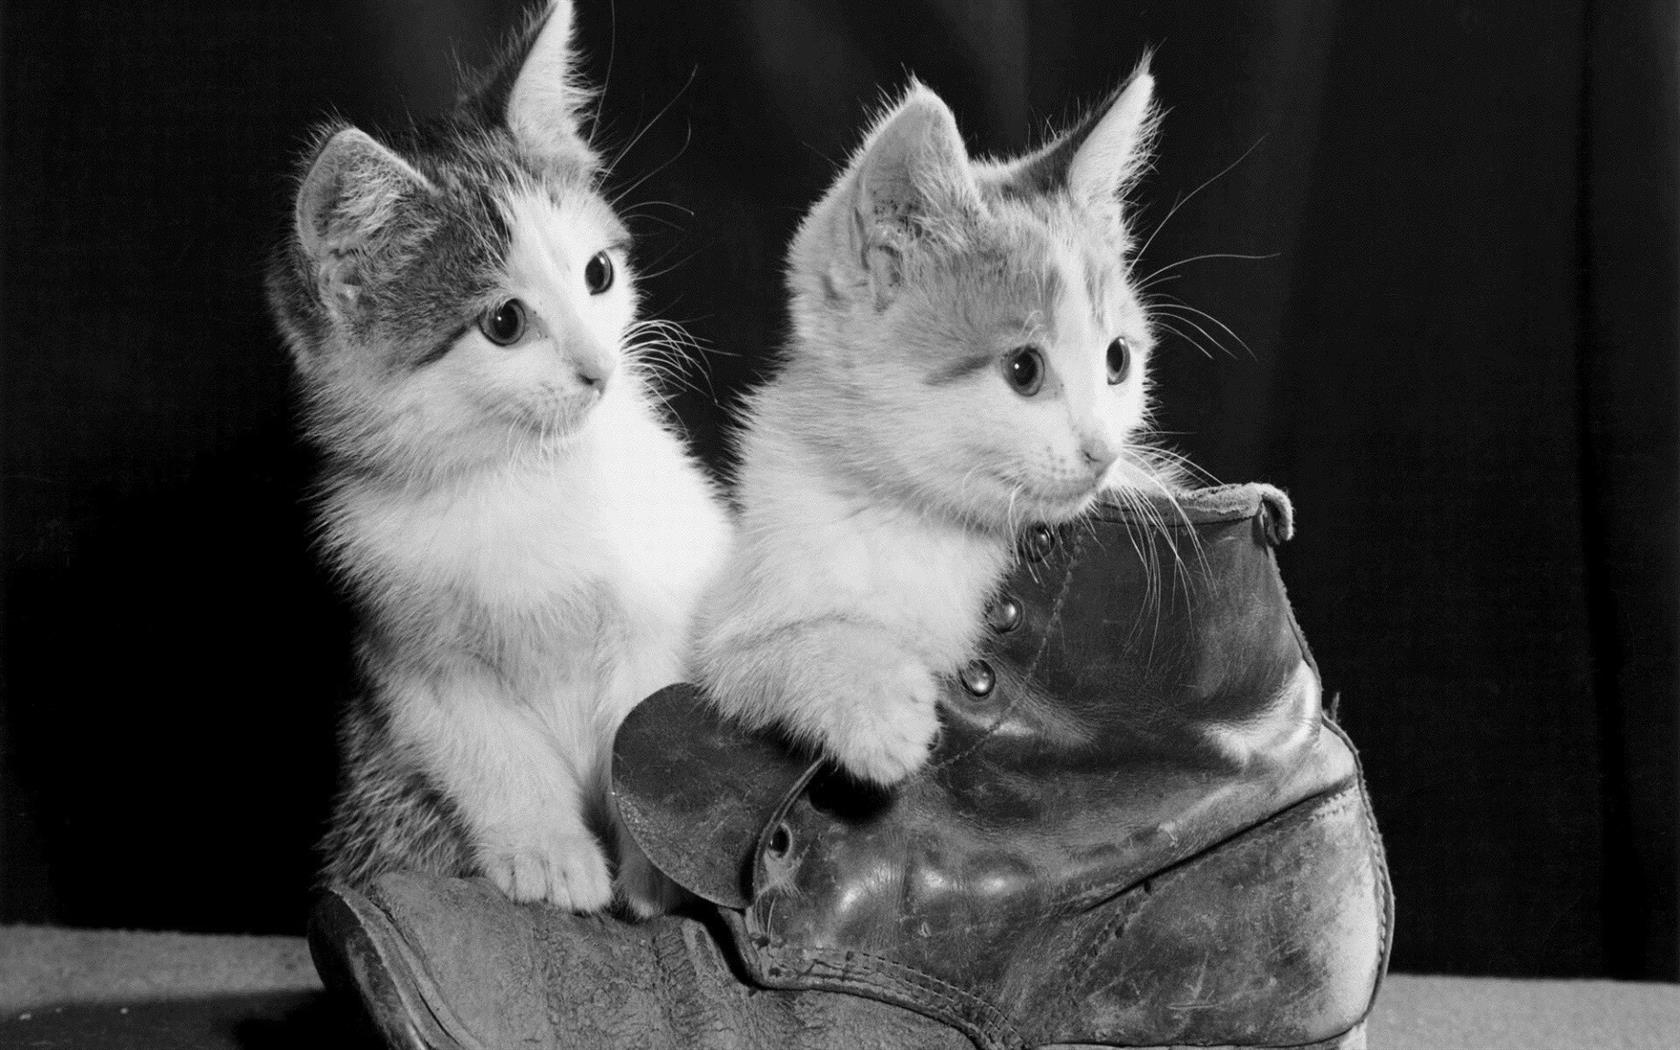 1680x1050 Cute Little White Cat on Shoes